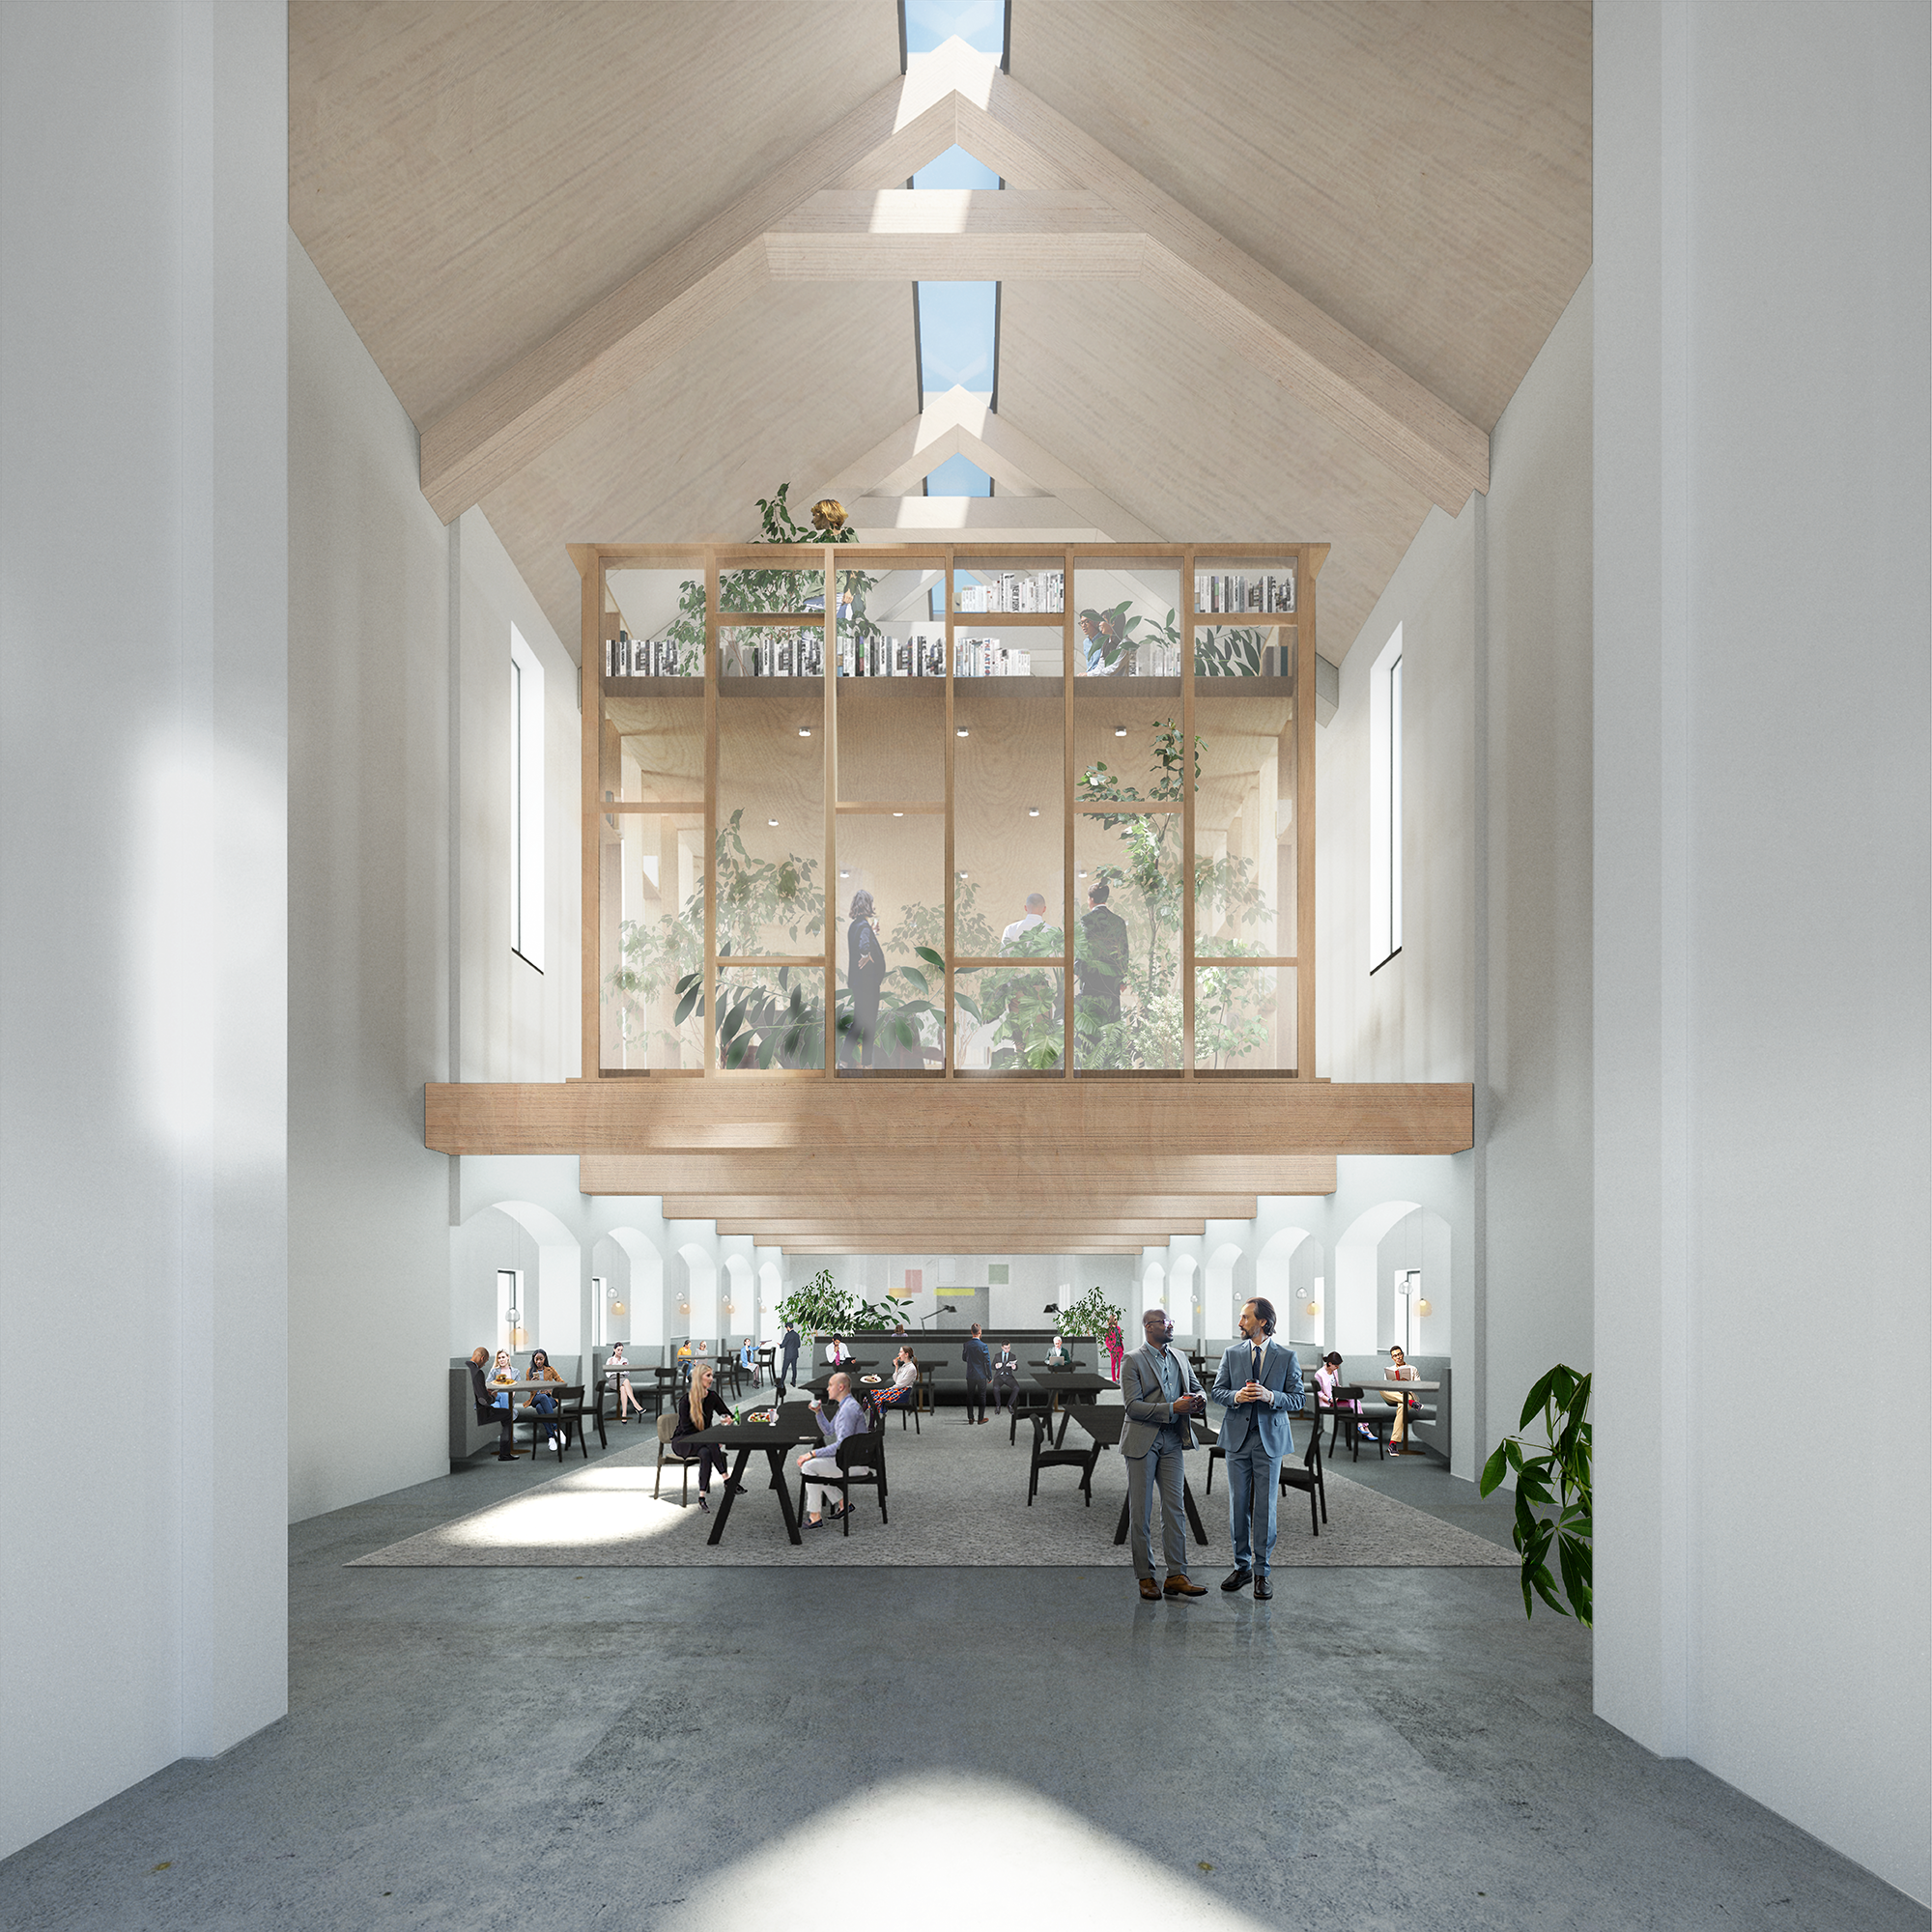 TRANSFORMATION PUBLIC PROSECUTOR'S OFFICE, designed by NOAHH | Network Oriented Architecture